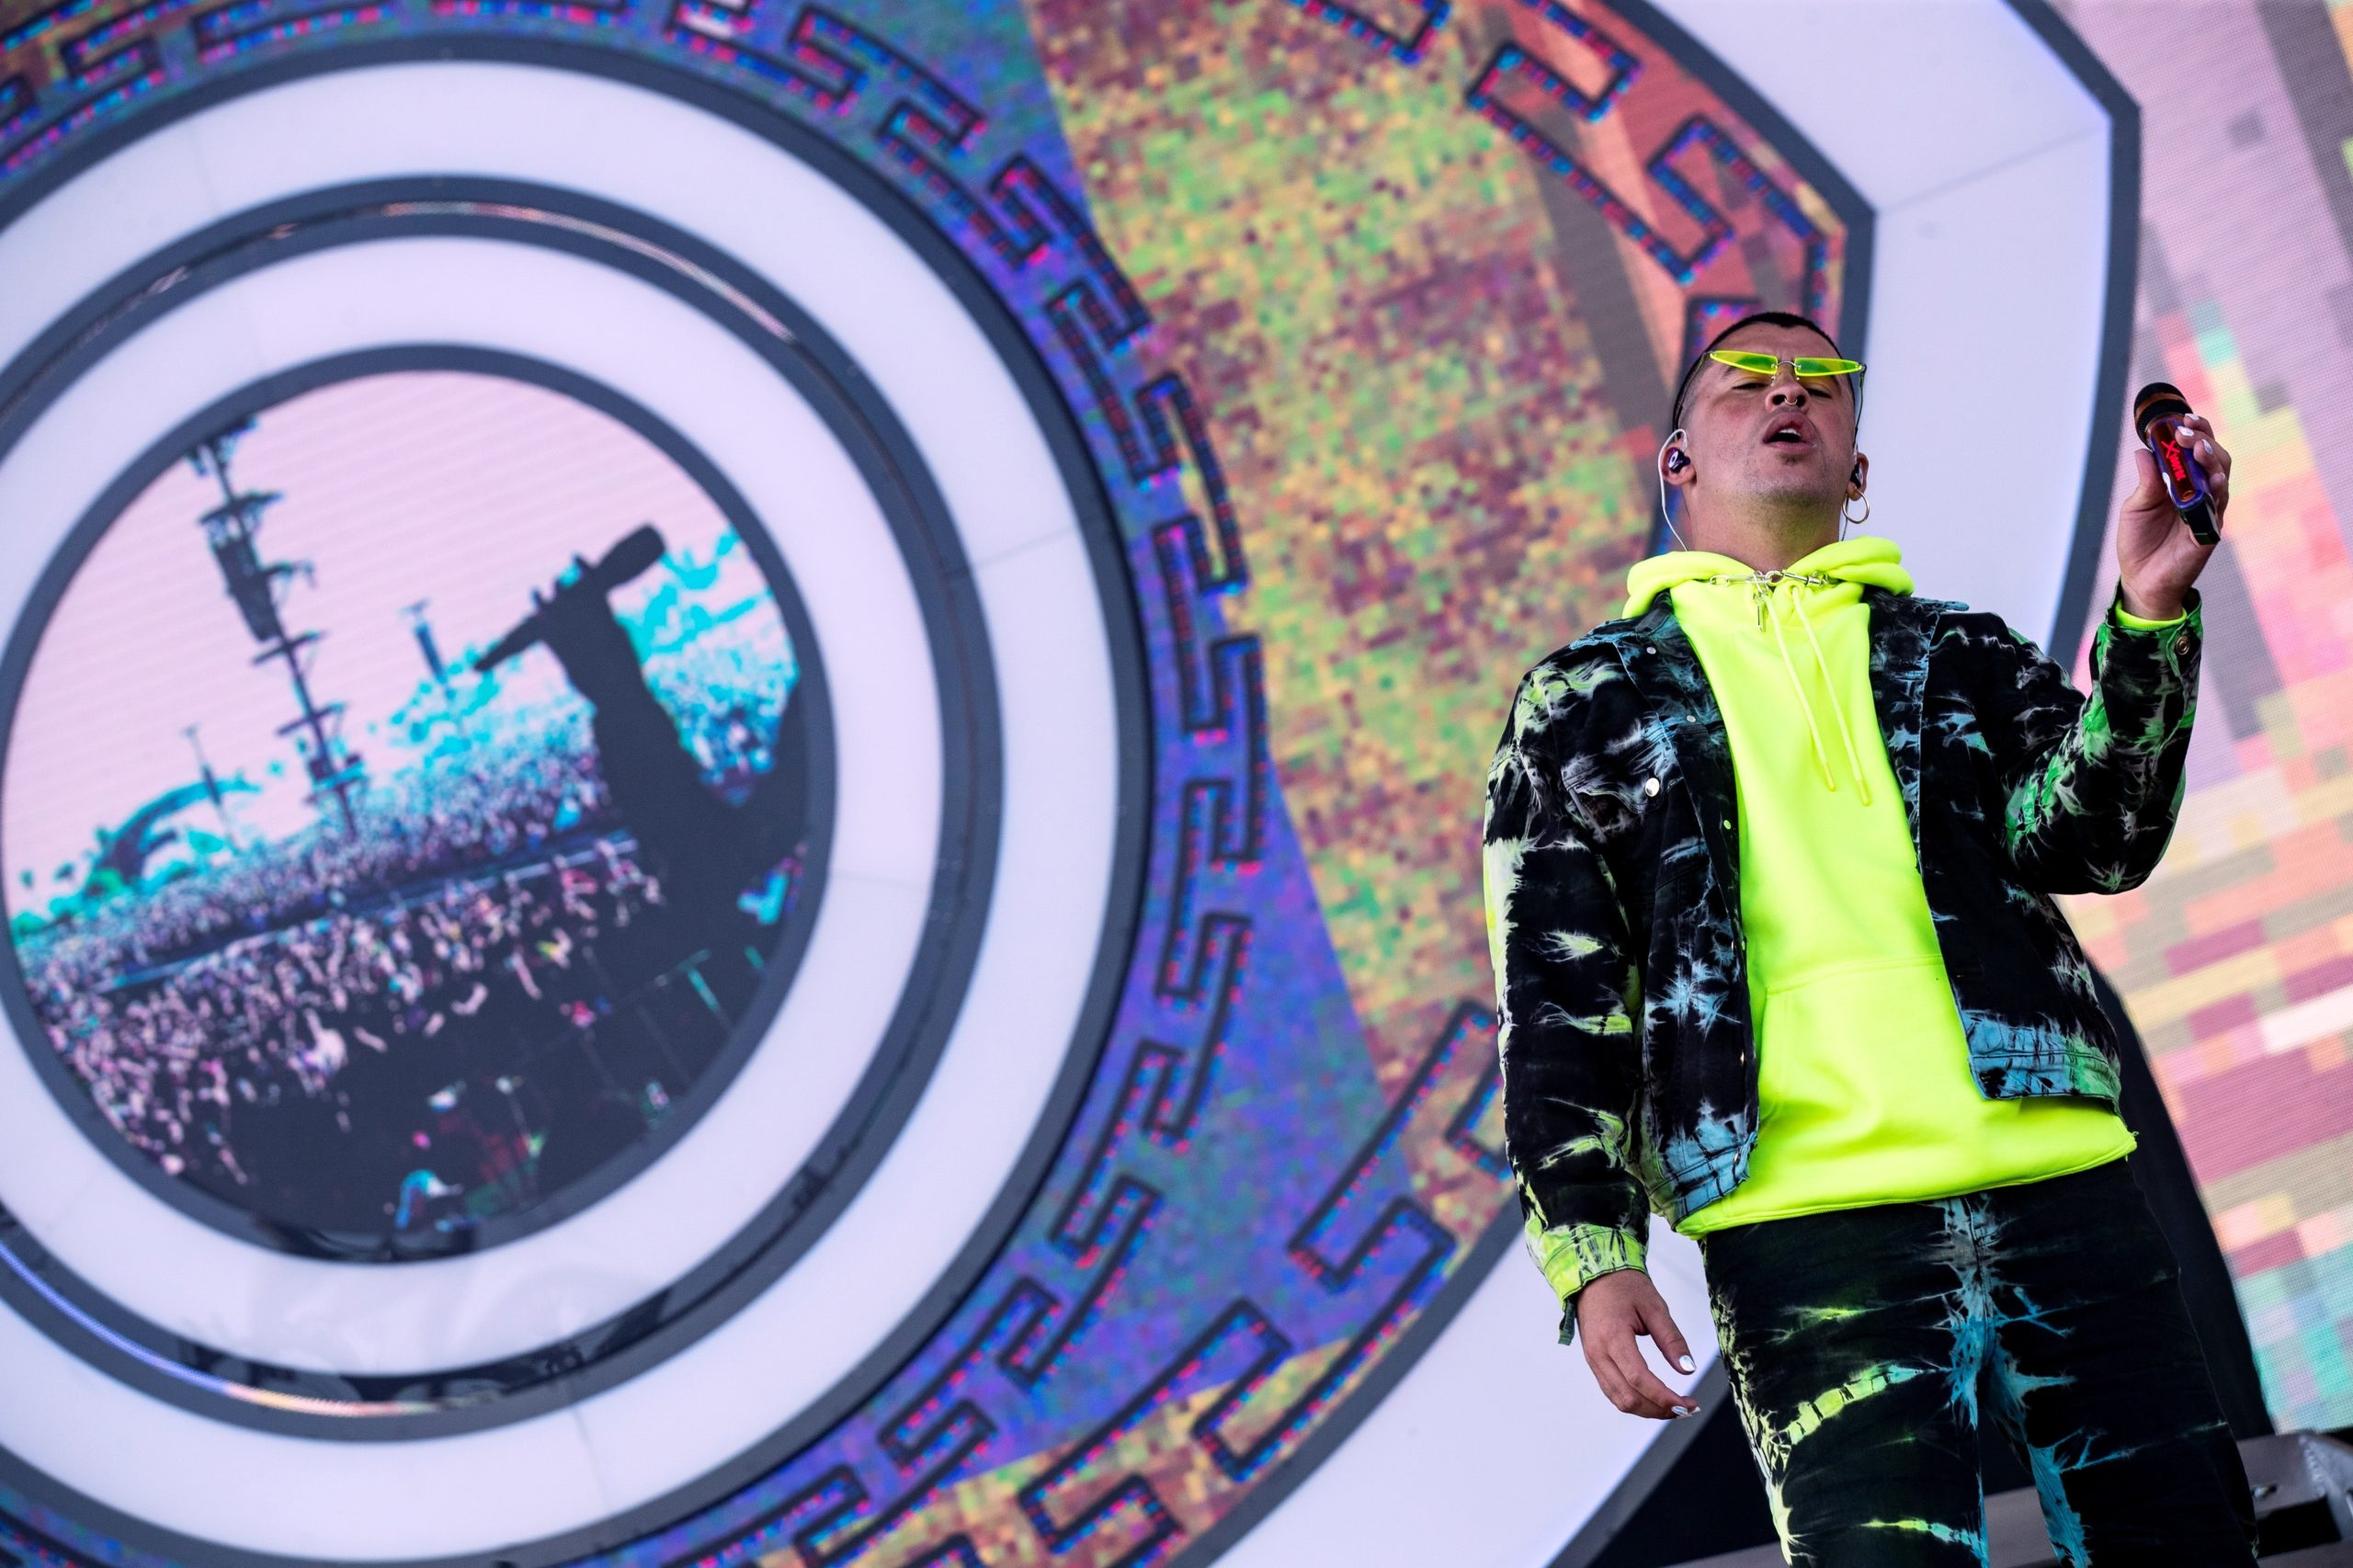 Bad Bunny se convirtió en la portada de The New York Times